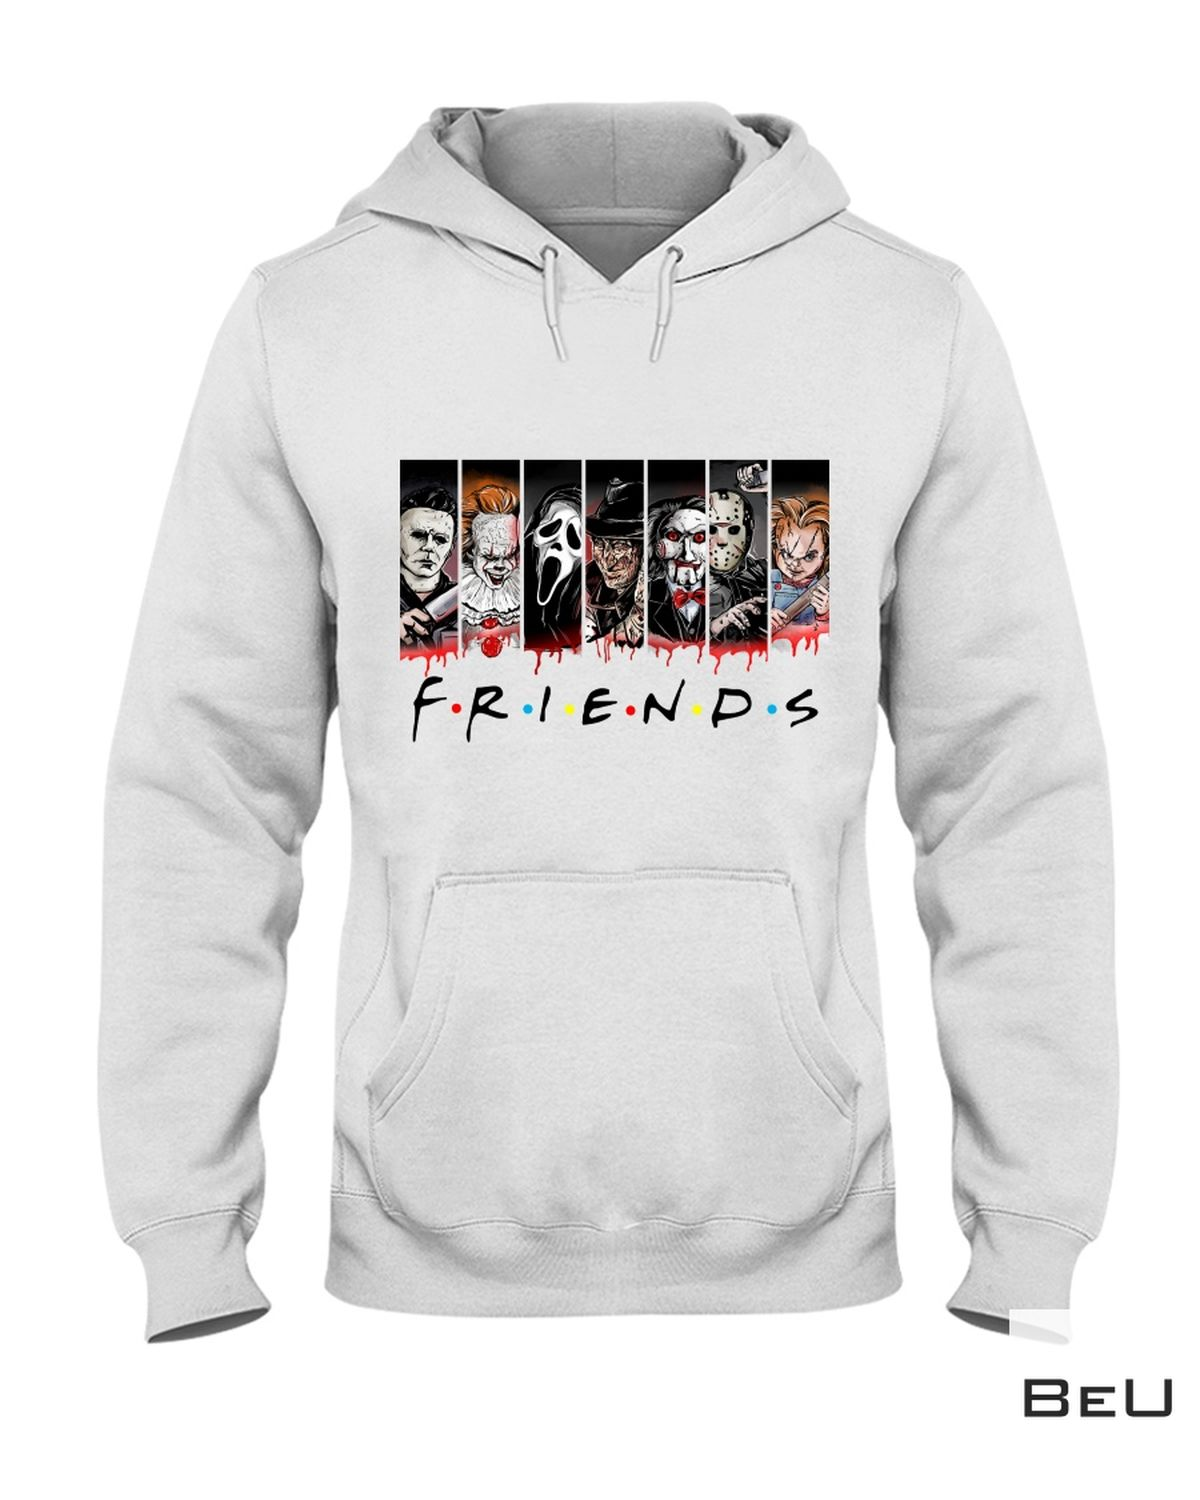 Very Good Quality Friends Horror Movies Characters Shirt